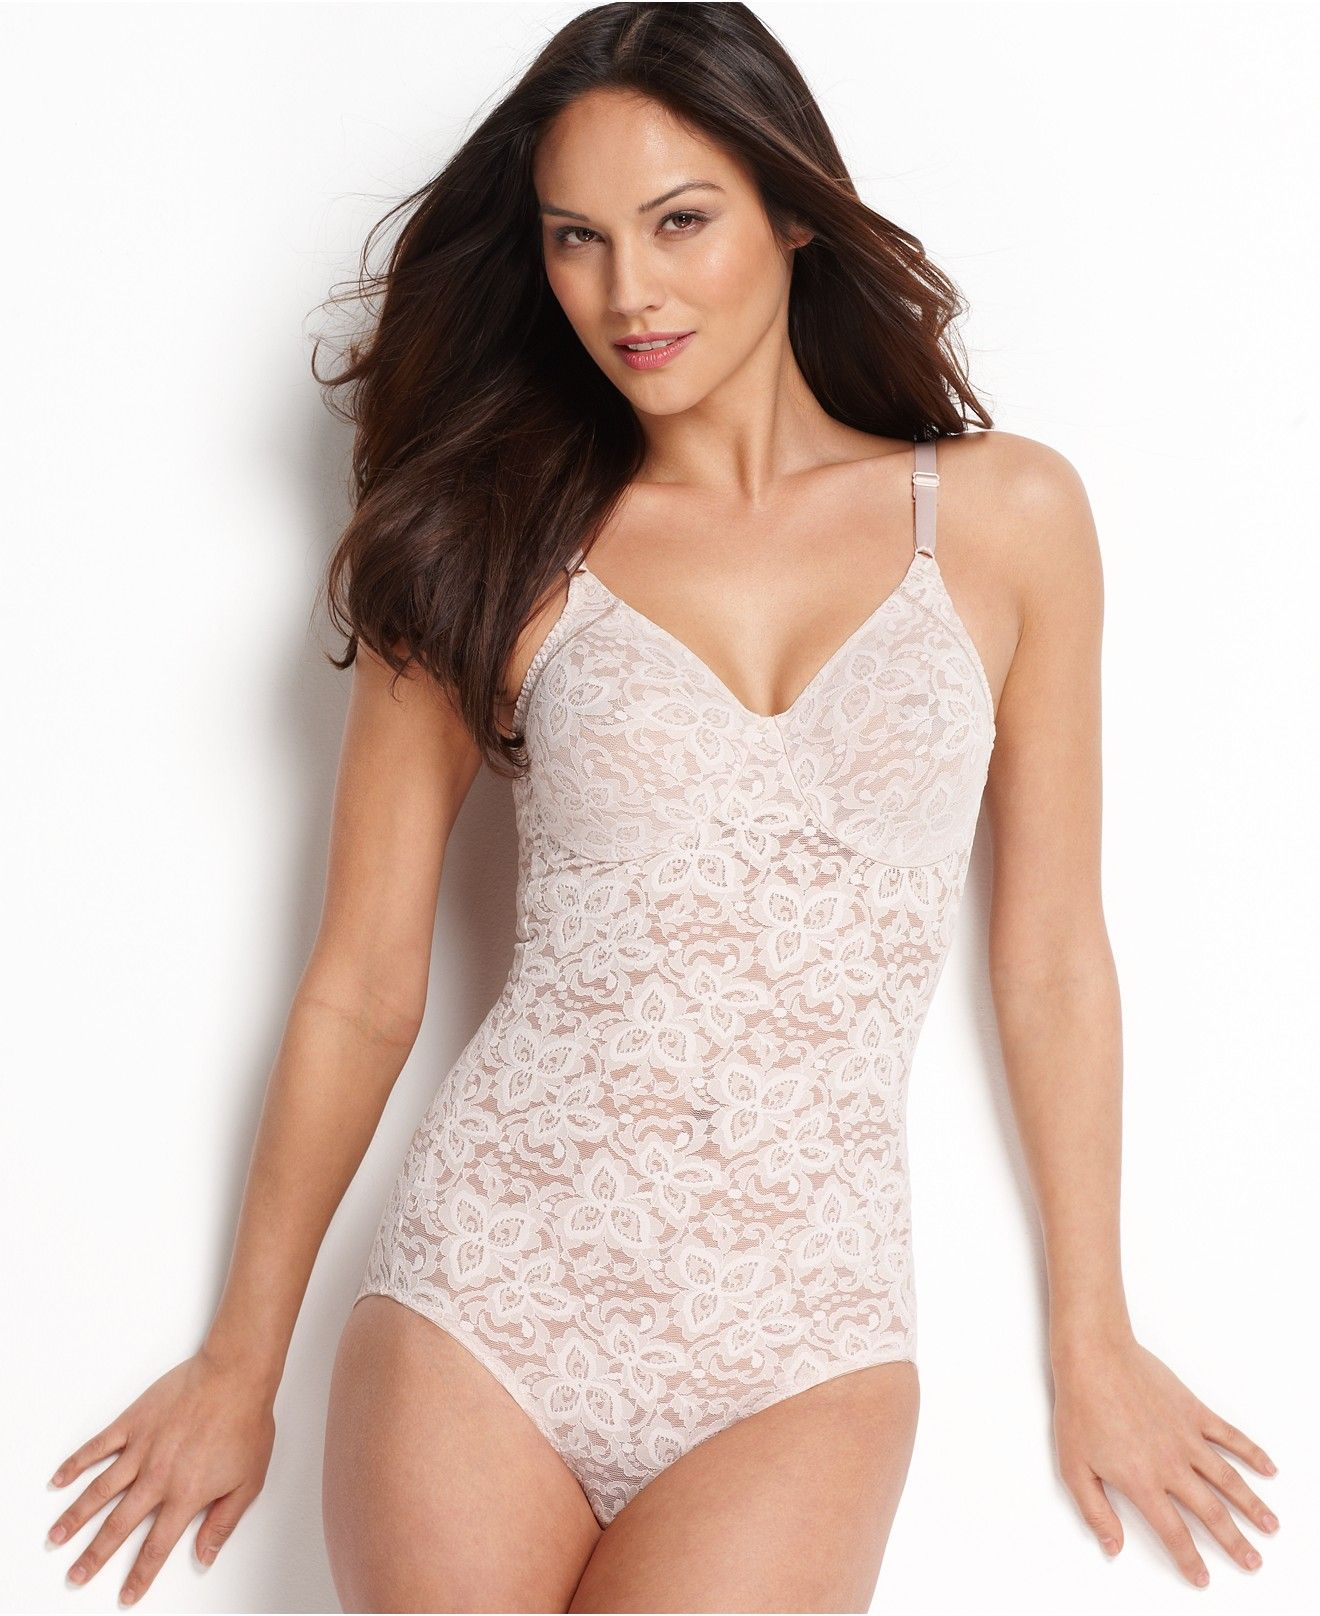 9be2b8ee016 Women s Firm Tummy-Control Lace N Smooth Body Shaper 8L10